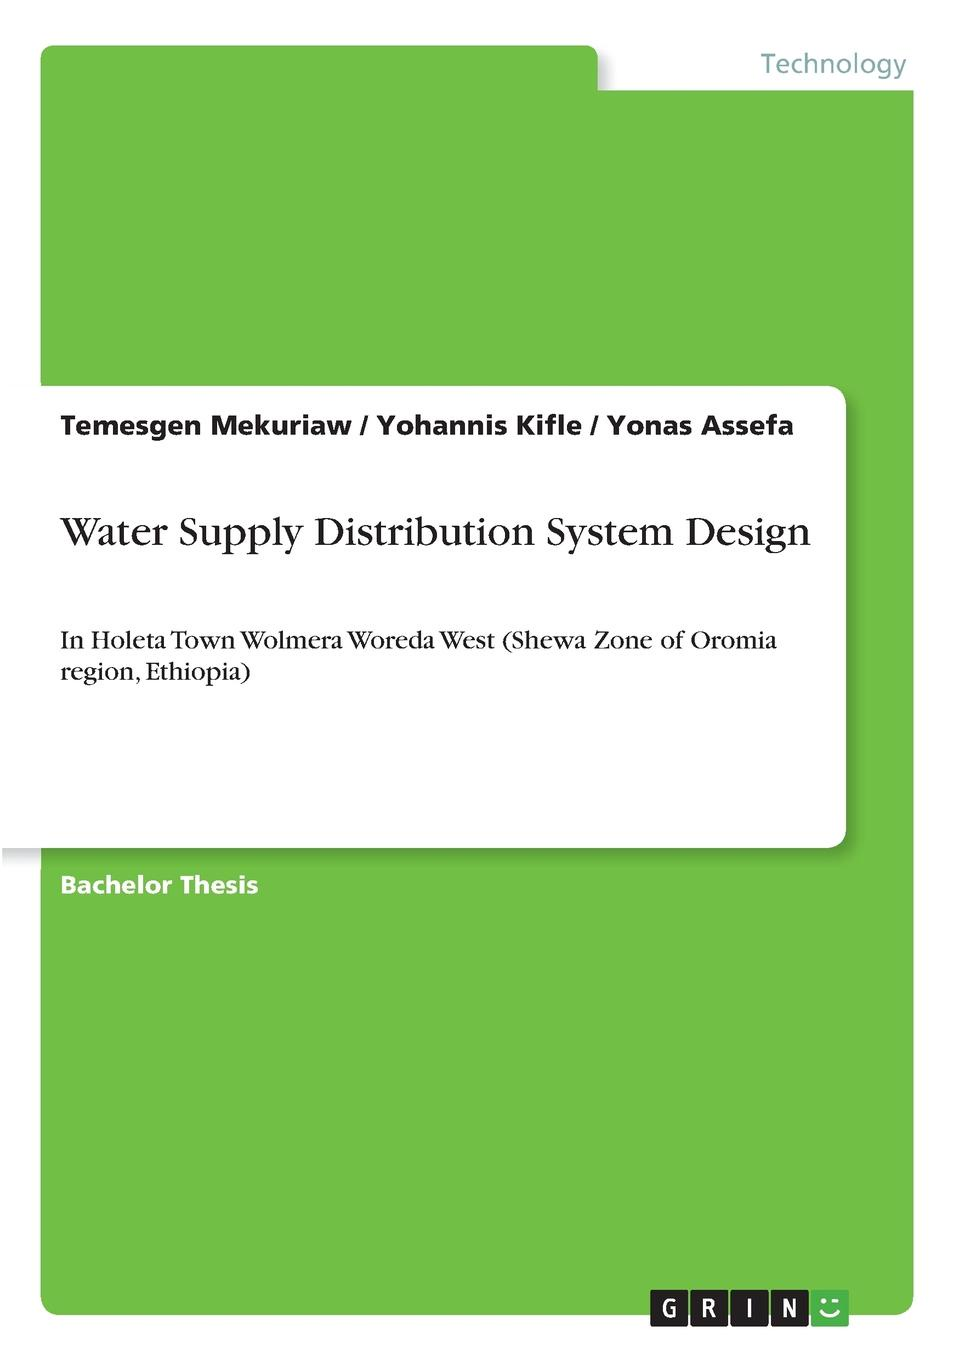 Temesgen Mekuriaw, Yohannis Kifle, Yonas Assefa Water Supply Distribution System Design a suit of vintage alloy water drop necklace and earrings for women